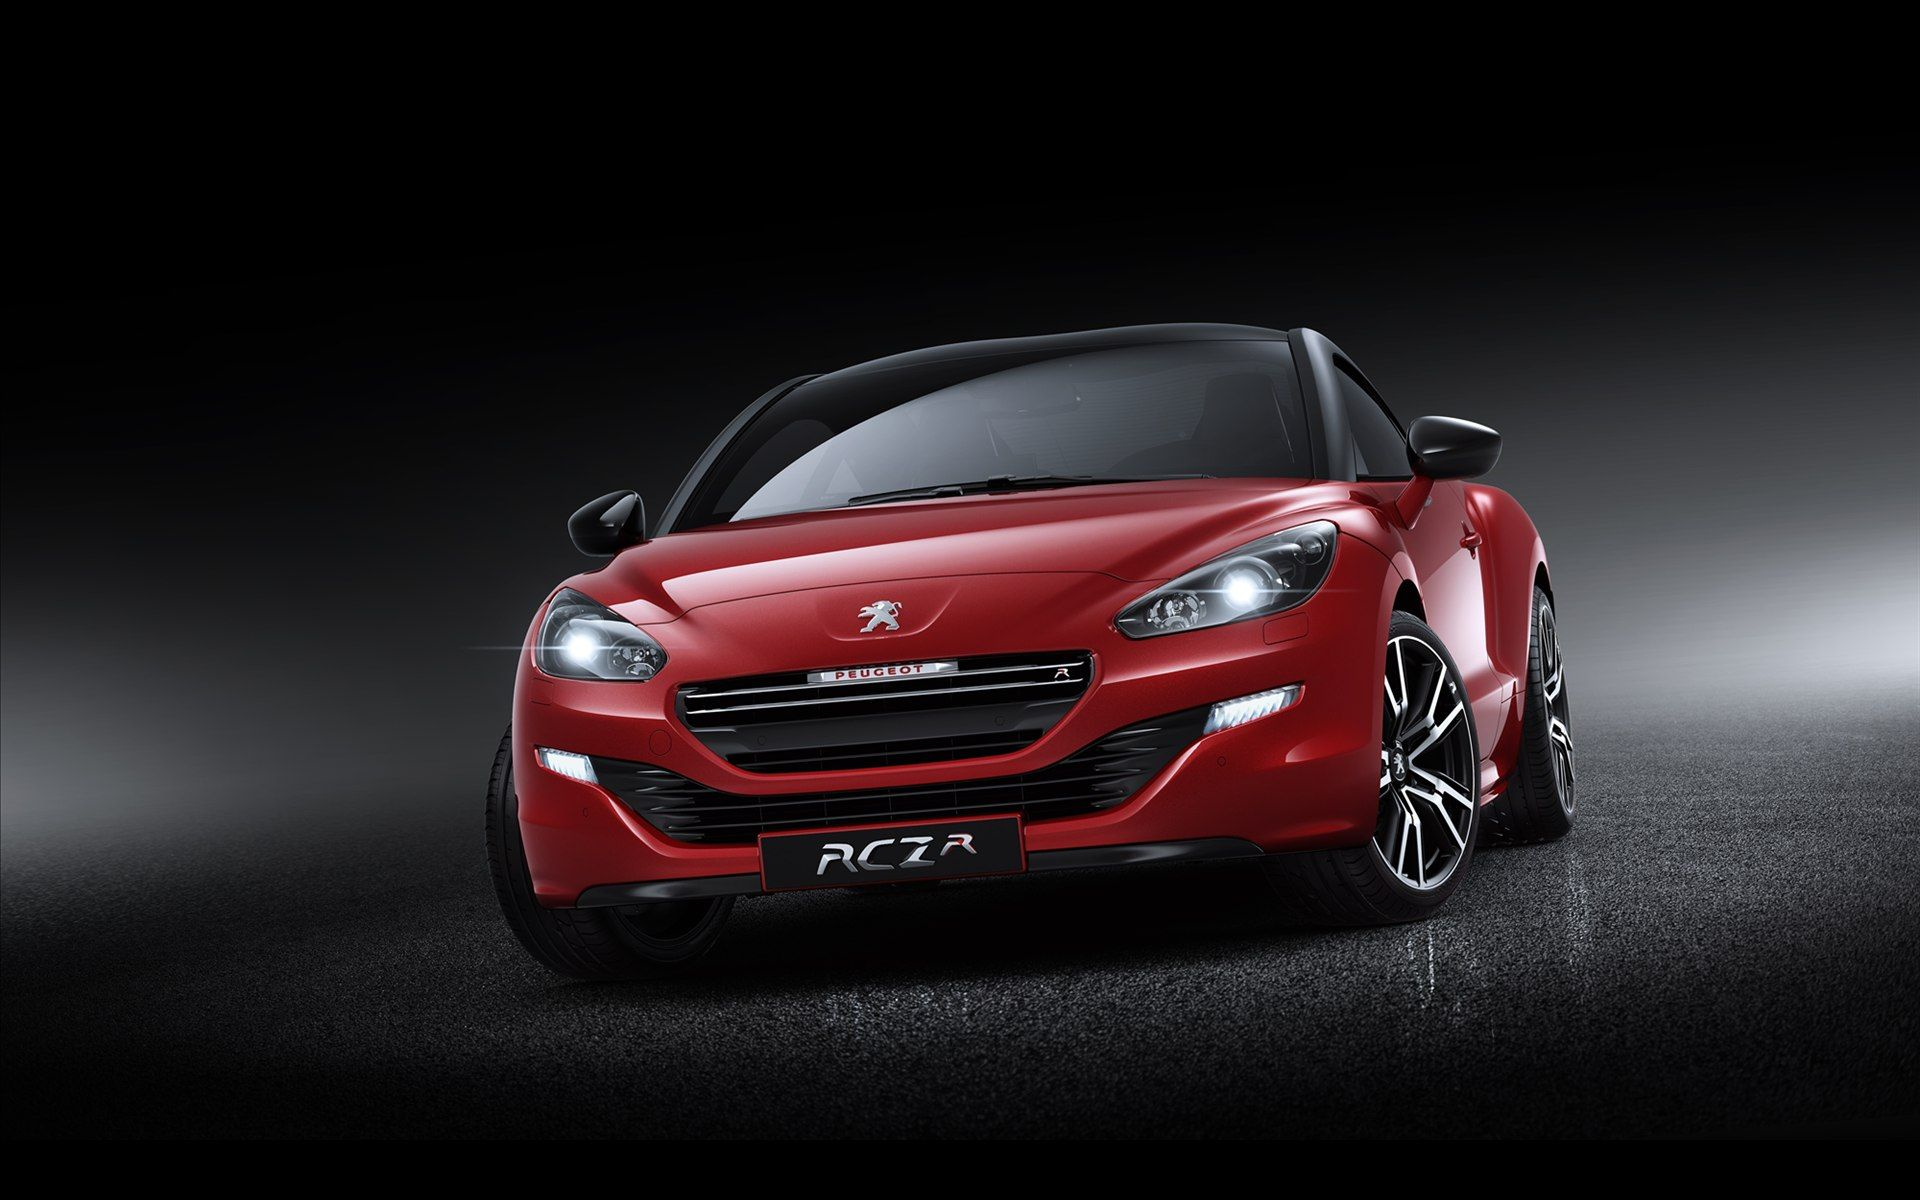 2014 peugeot rcz r hd car wallpapers peugeot pinterest peugeot car wallpapers and cars. Black Bedroom Furniture Sets. Home Design Ideas